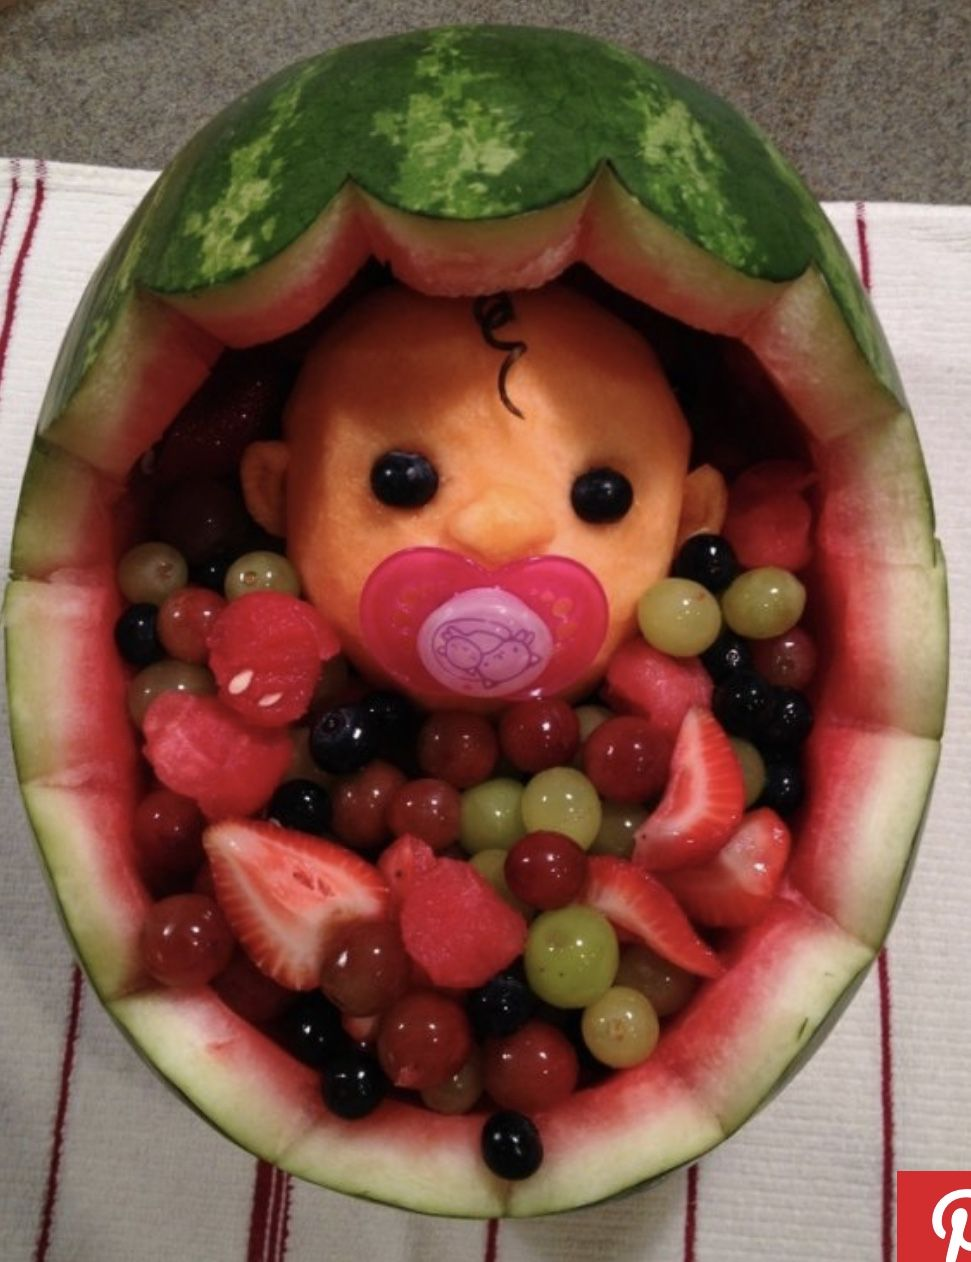 Baby Shower Watermelon Carving : shower, watermelon, carving, Johanna, Fonseca, Shower, Watermelon,, Watermelon, Carving,, Party